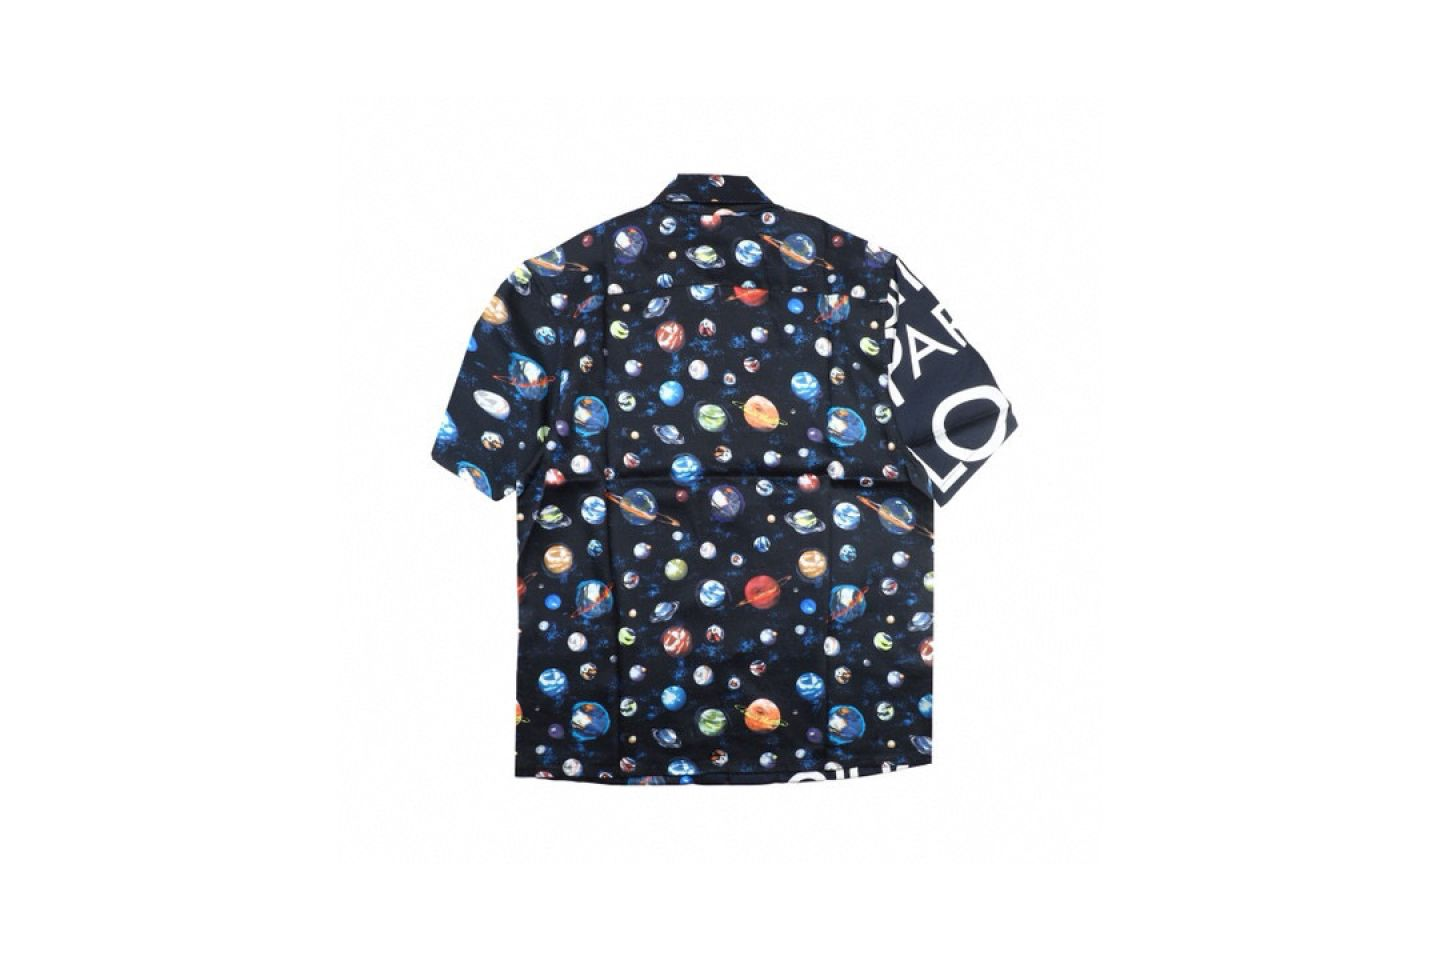 Shirt Louis Vuitton Starry Sky Series Liu Haoran Shirt 5 louis_vuitton_starry_sky_series_liu_haoran_shirt__5